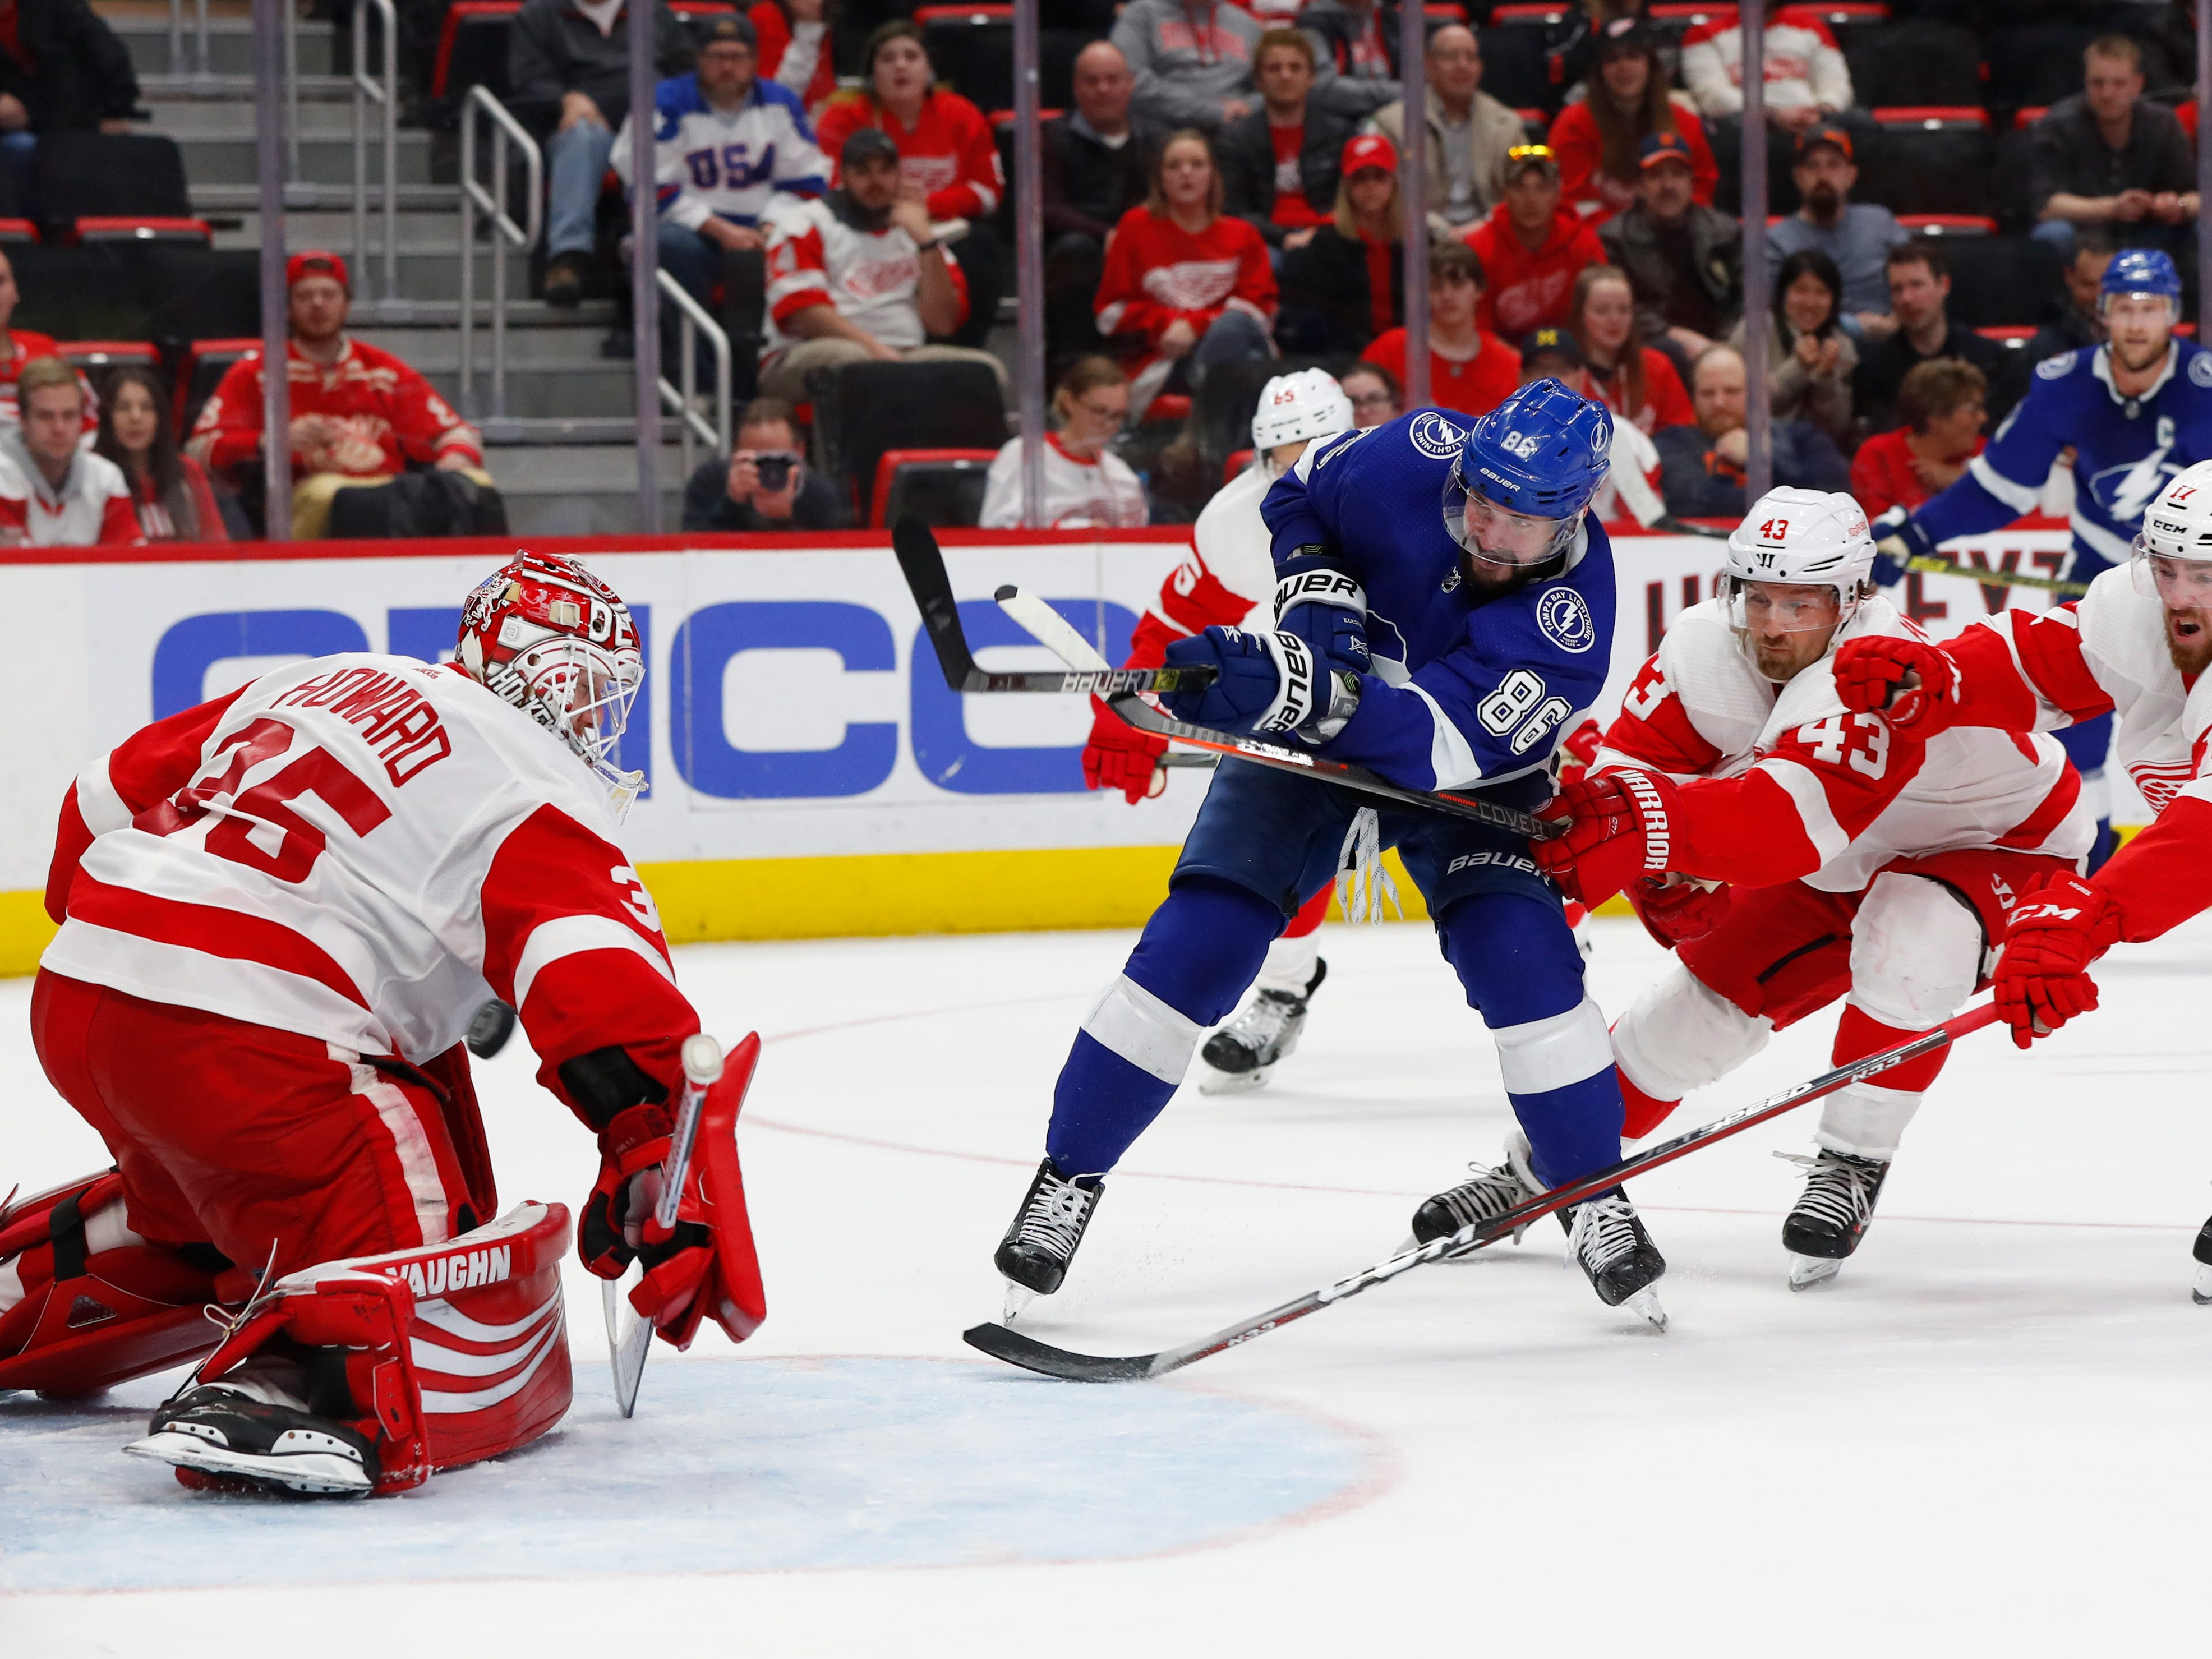 Tampa Bay Lightning's Nikita Kucherov (86) scores a goal on Detroit Red Wings goaltender Jimmy Howard (35) as Darren Helm (43) and Filip Hronek (17) defend in the third period.